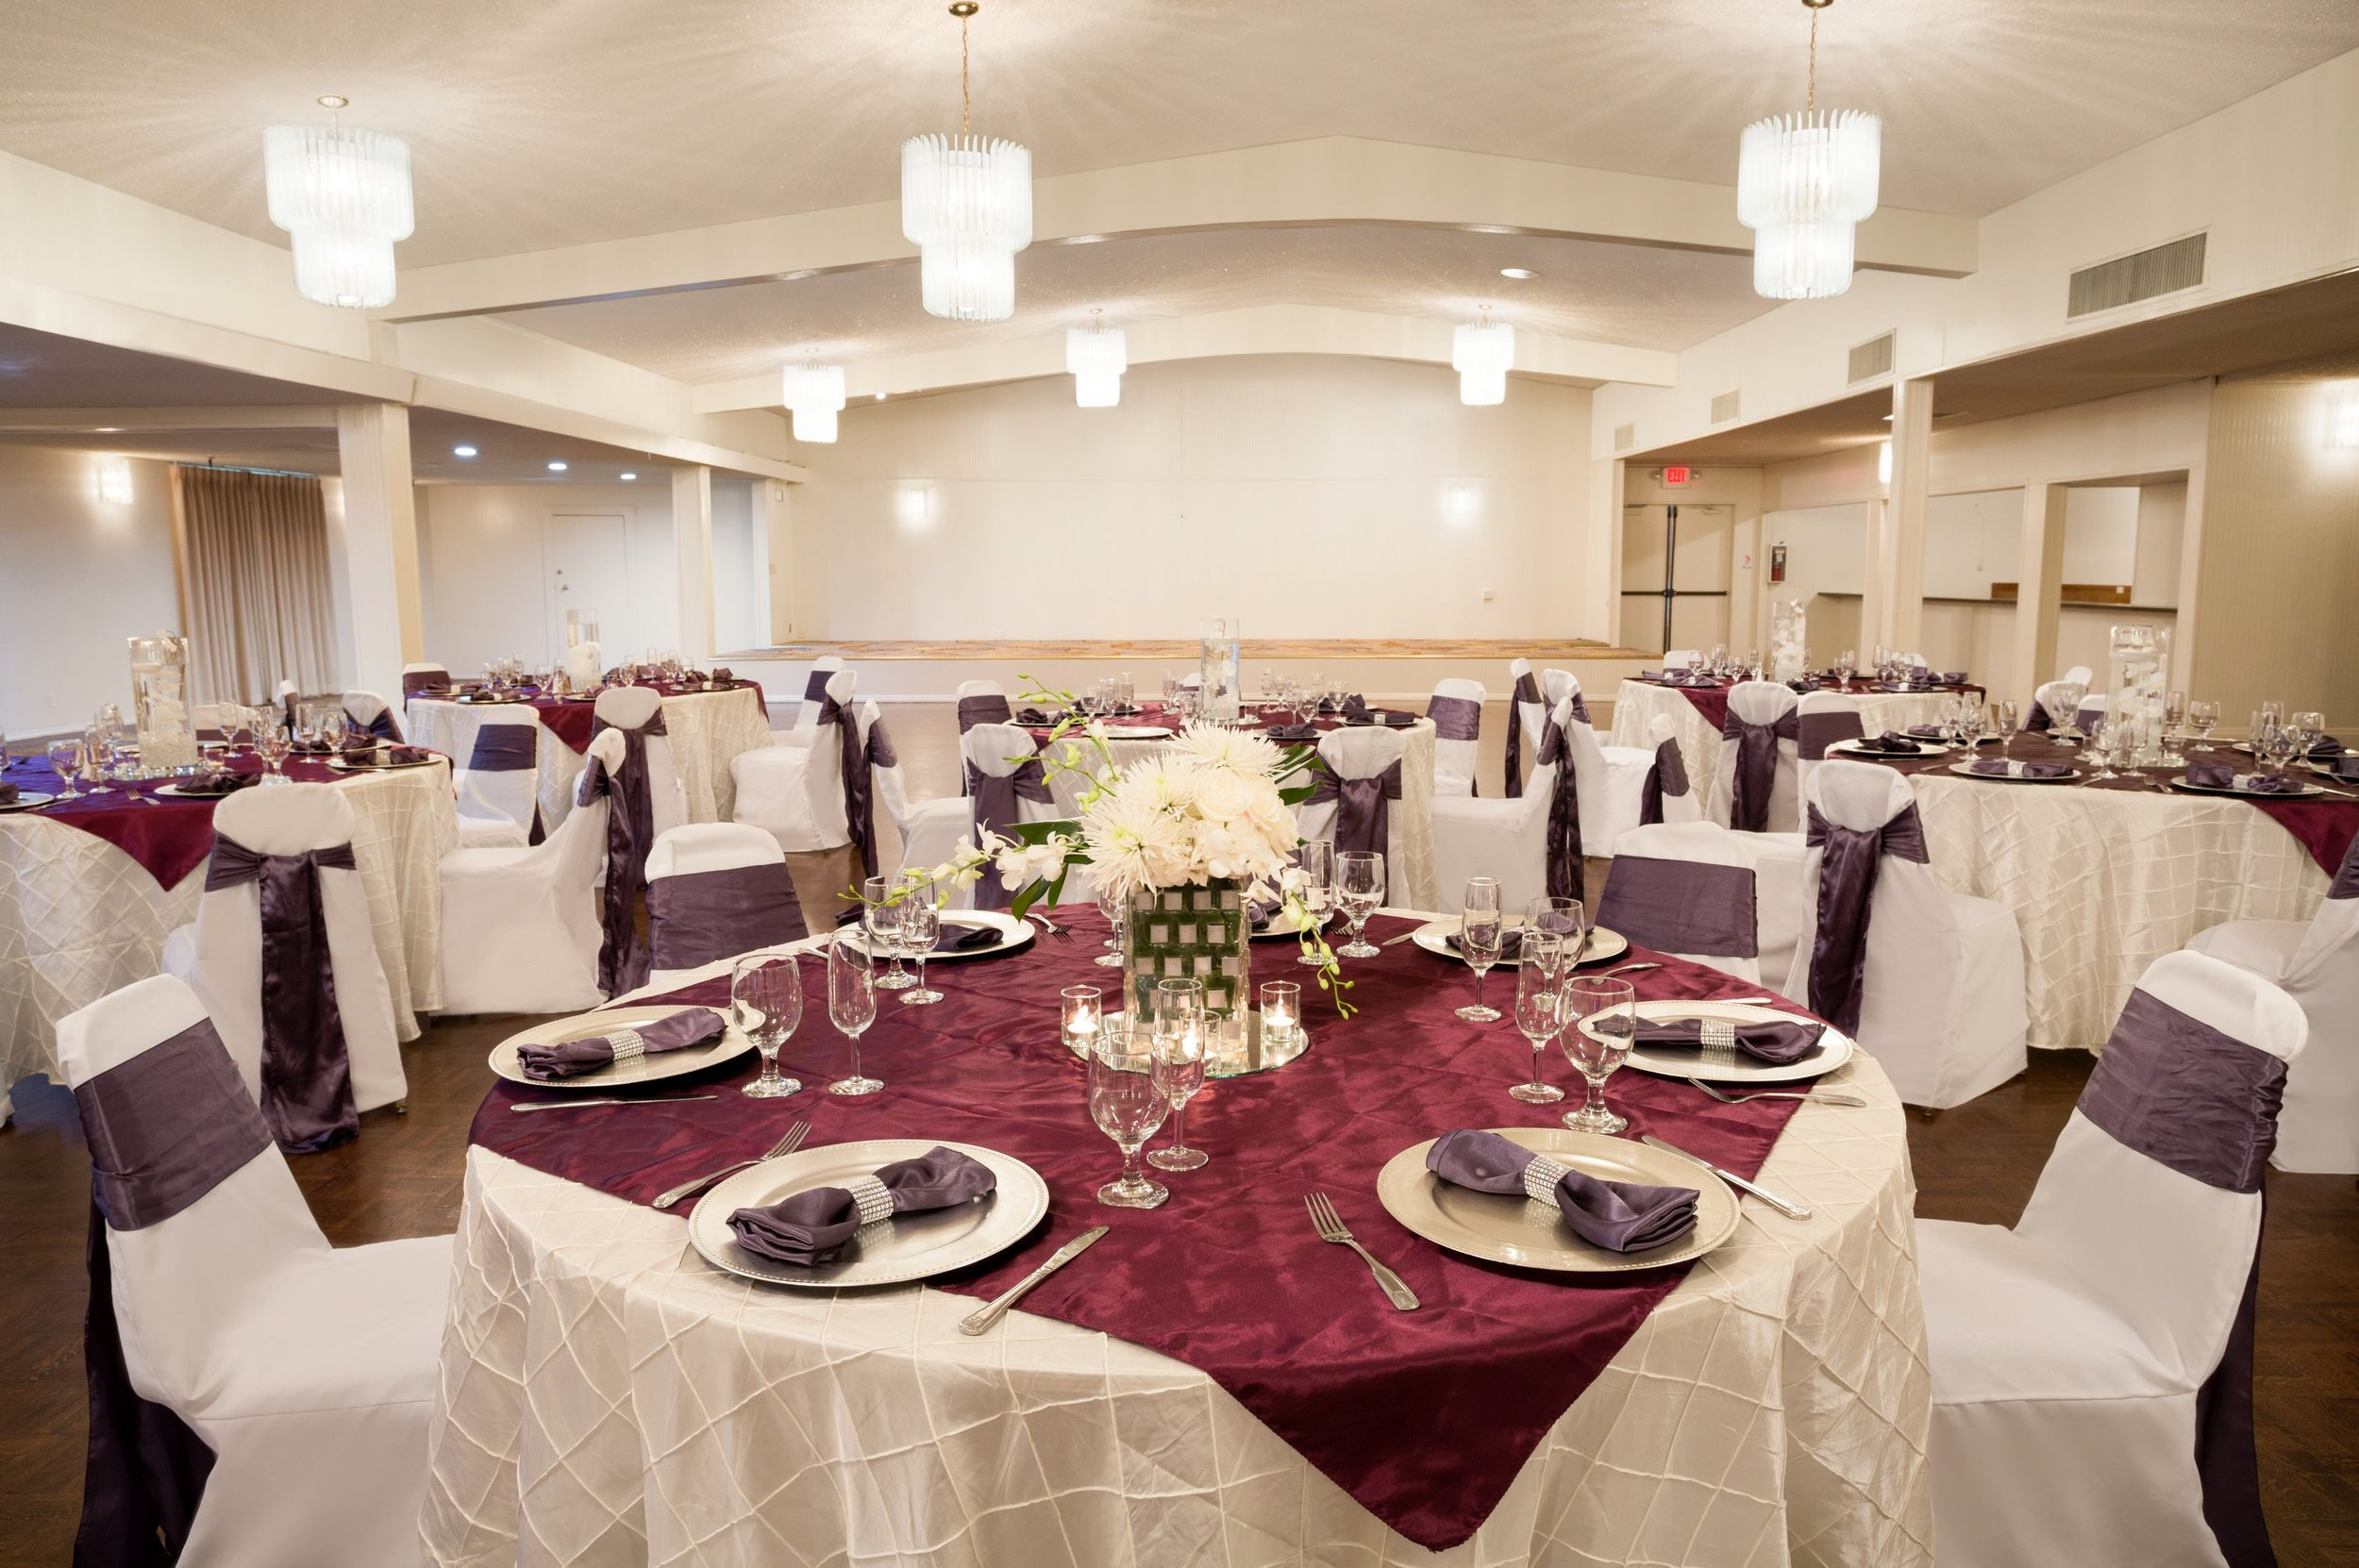 Meeting & Event Space - Our hotel in the Kearney Mesa area of San Diego features over 7,000 square feet of versatile event space, a stellar event management team, and a ton of onsite catering options that are sure to make your next event exceptional.Whether you're hosting a small, intimate meeting, or a large, romantic wedding, we've got the space for you. Visit our meetings & events page or our weddings page for more information on booking our hotel's event space!Submit an inquiry today!